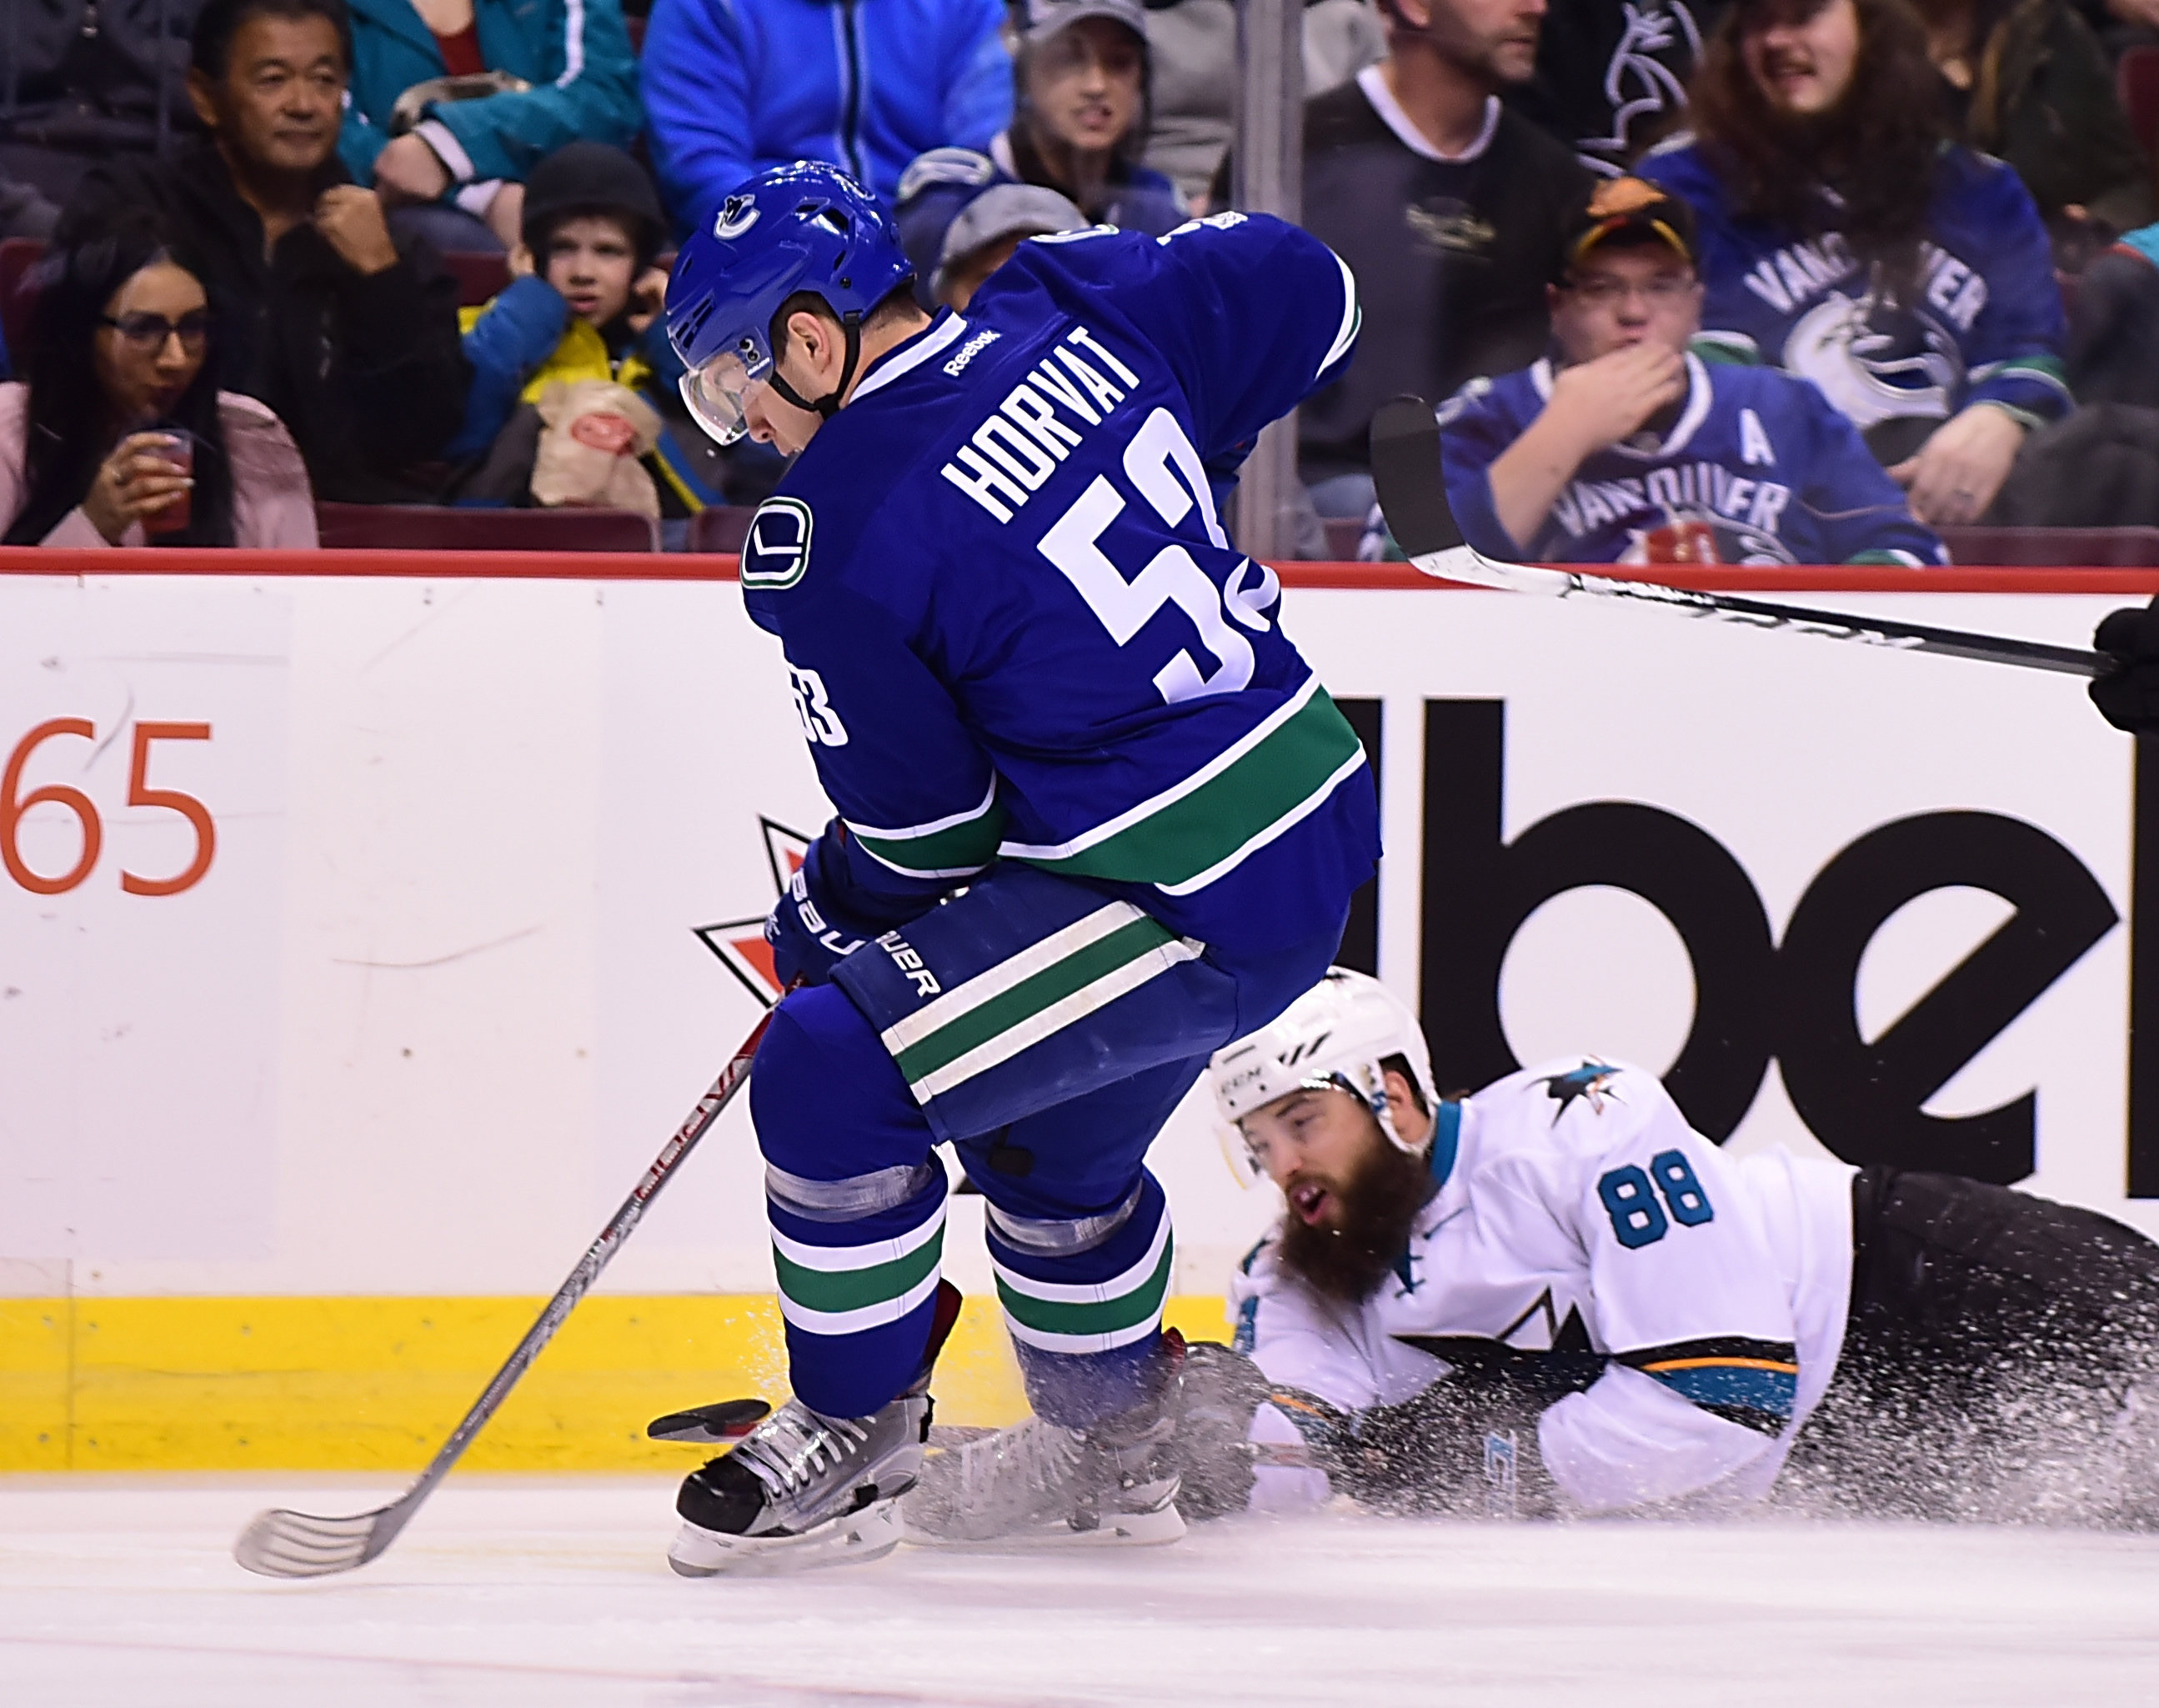 9900966-nhl-san-jose-sharks-at-vancouver-canucks